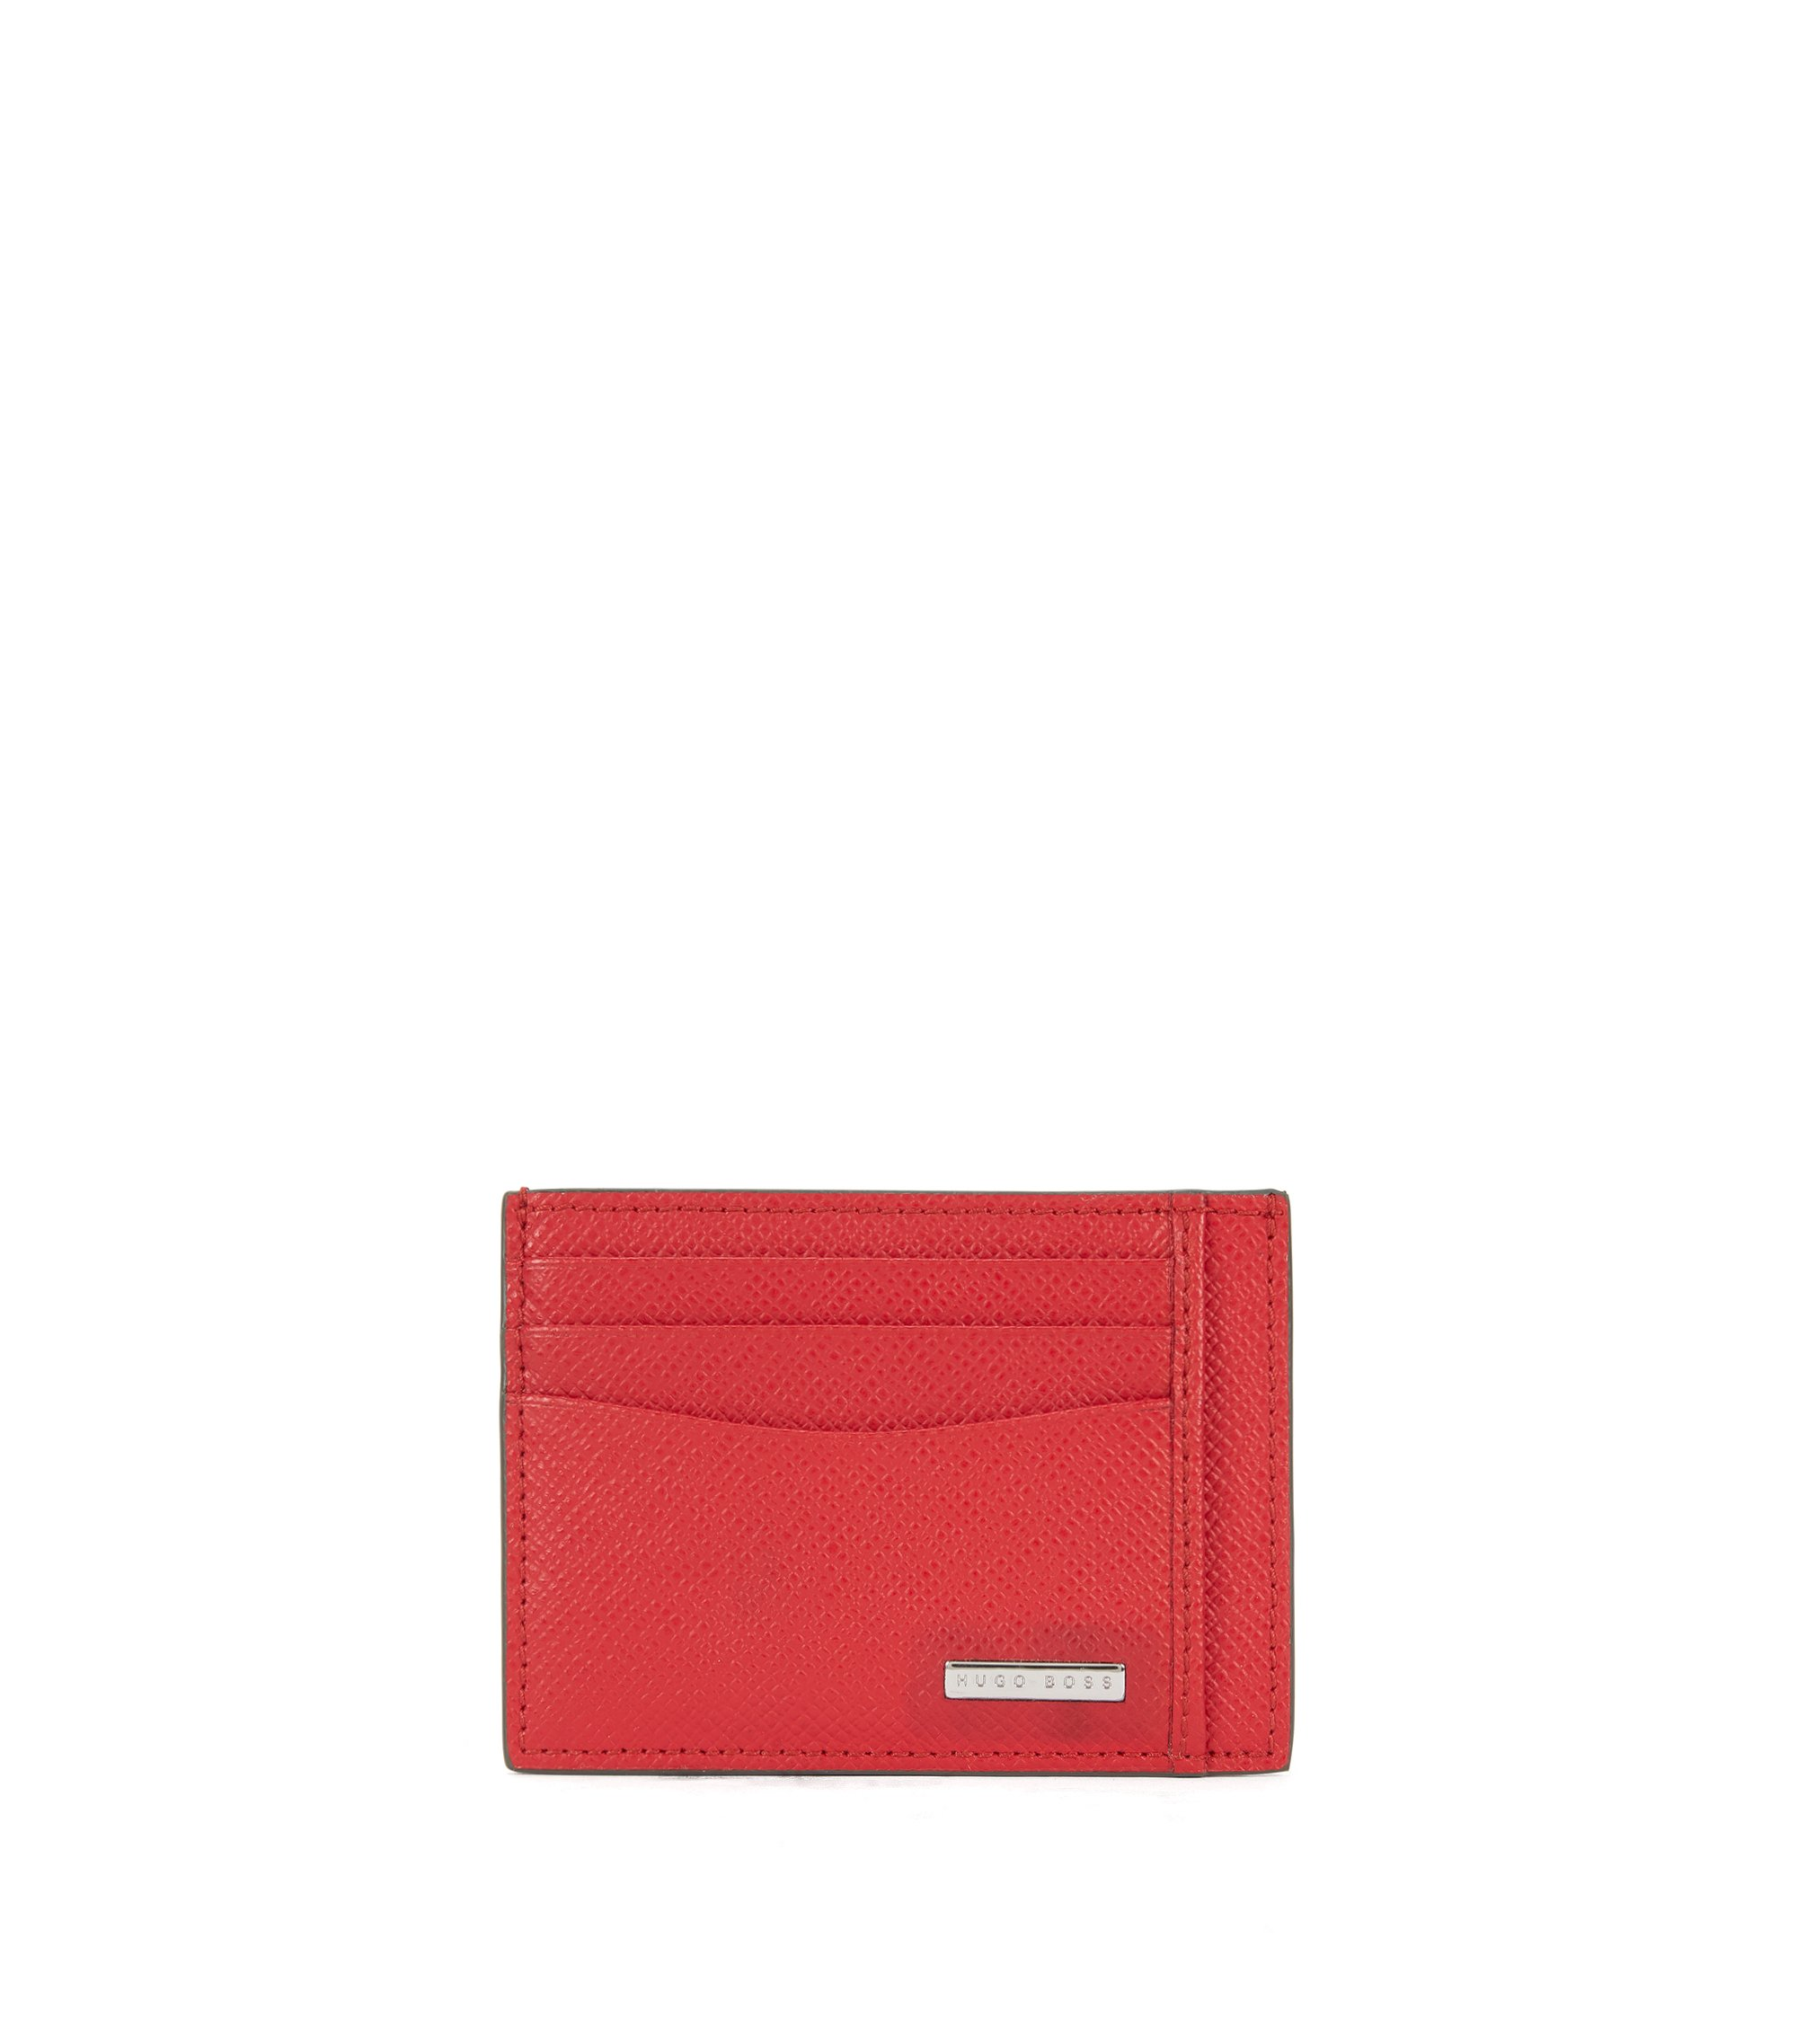 Porte-cartes Signature Collection, en cuir palmellato, Rouge